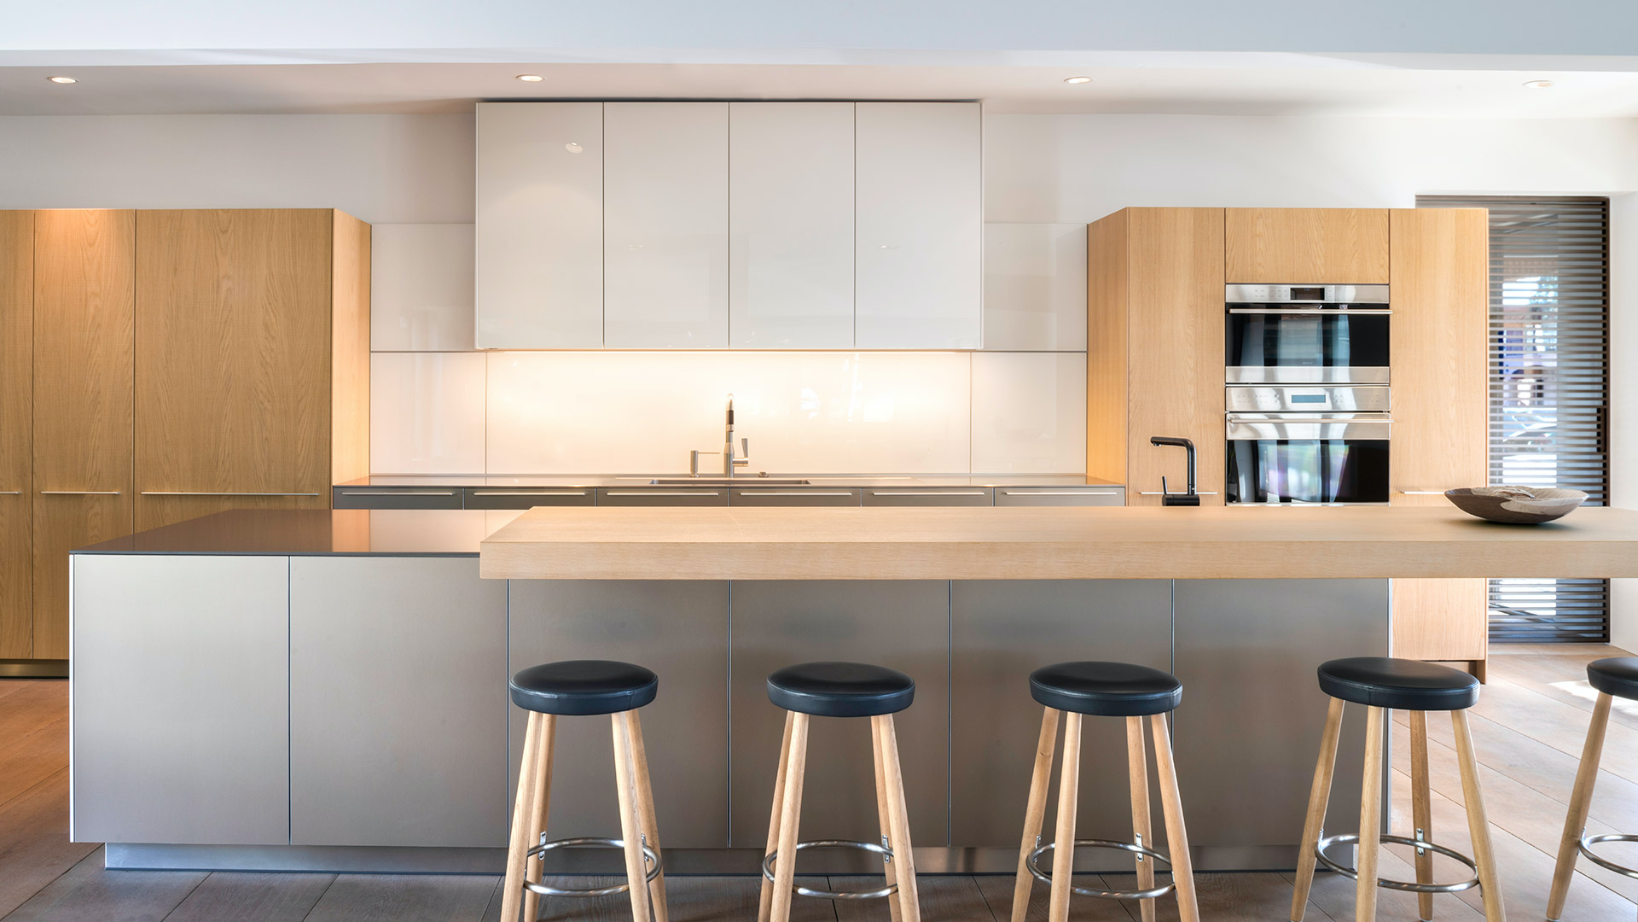 Exquisite bulthaup kitchens blend form and function.